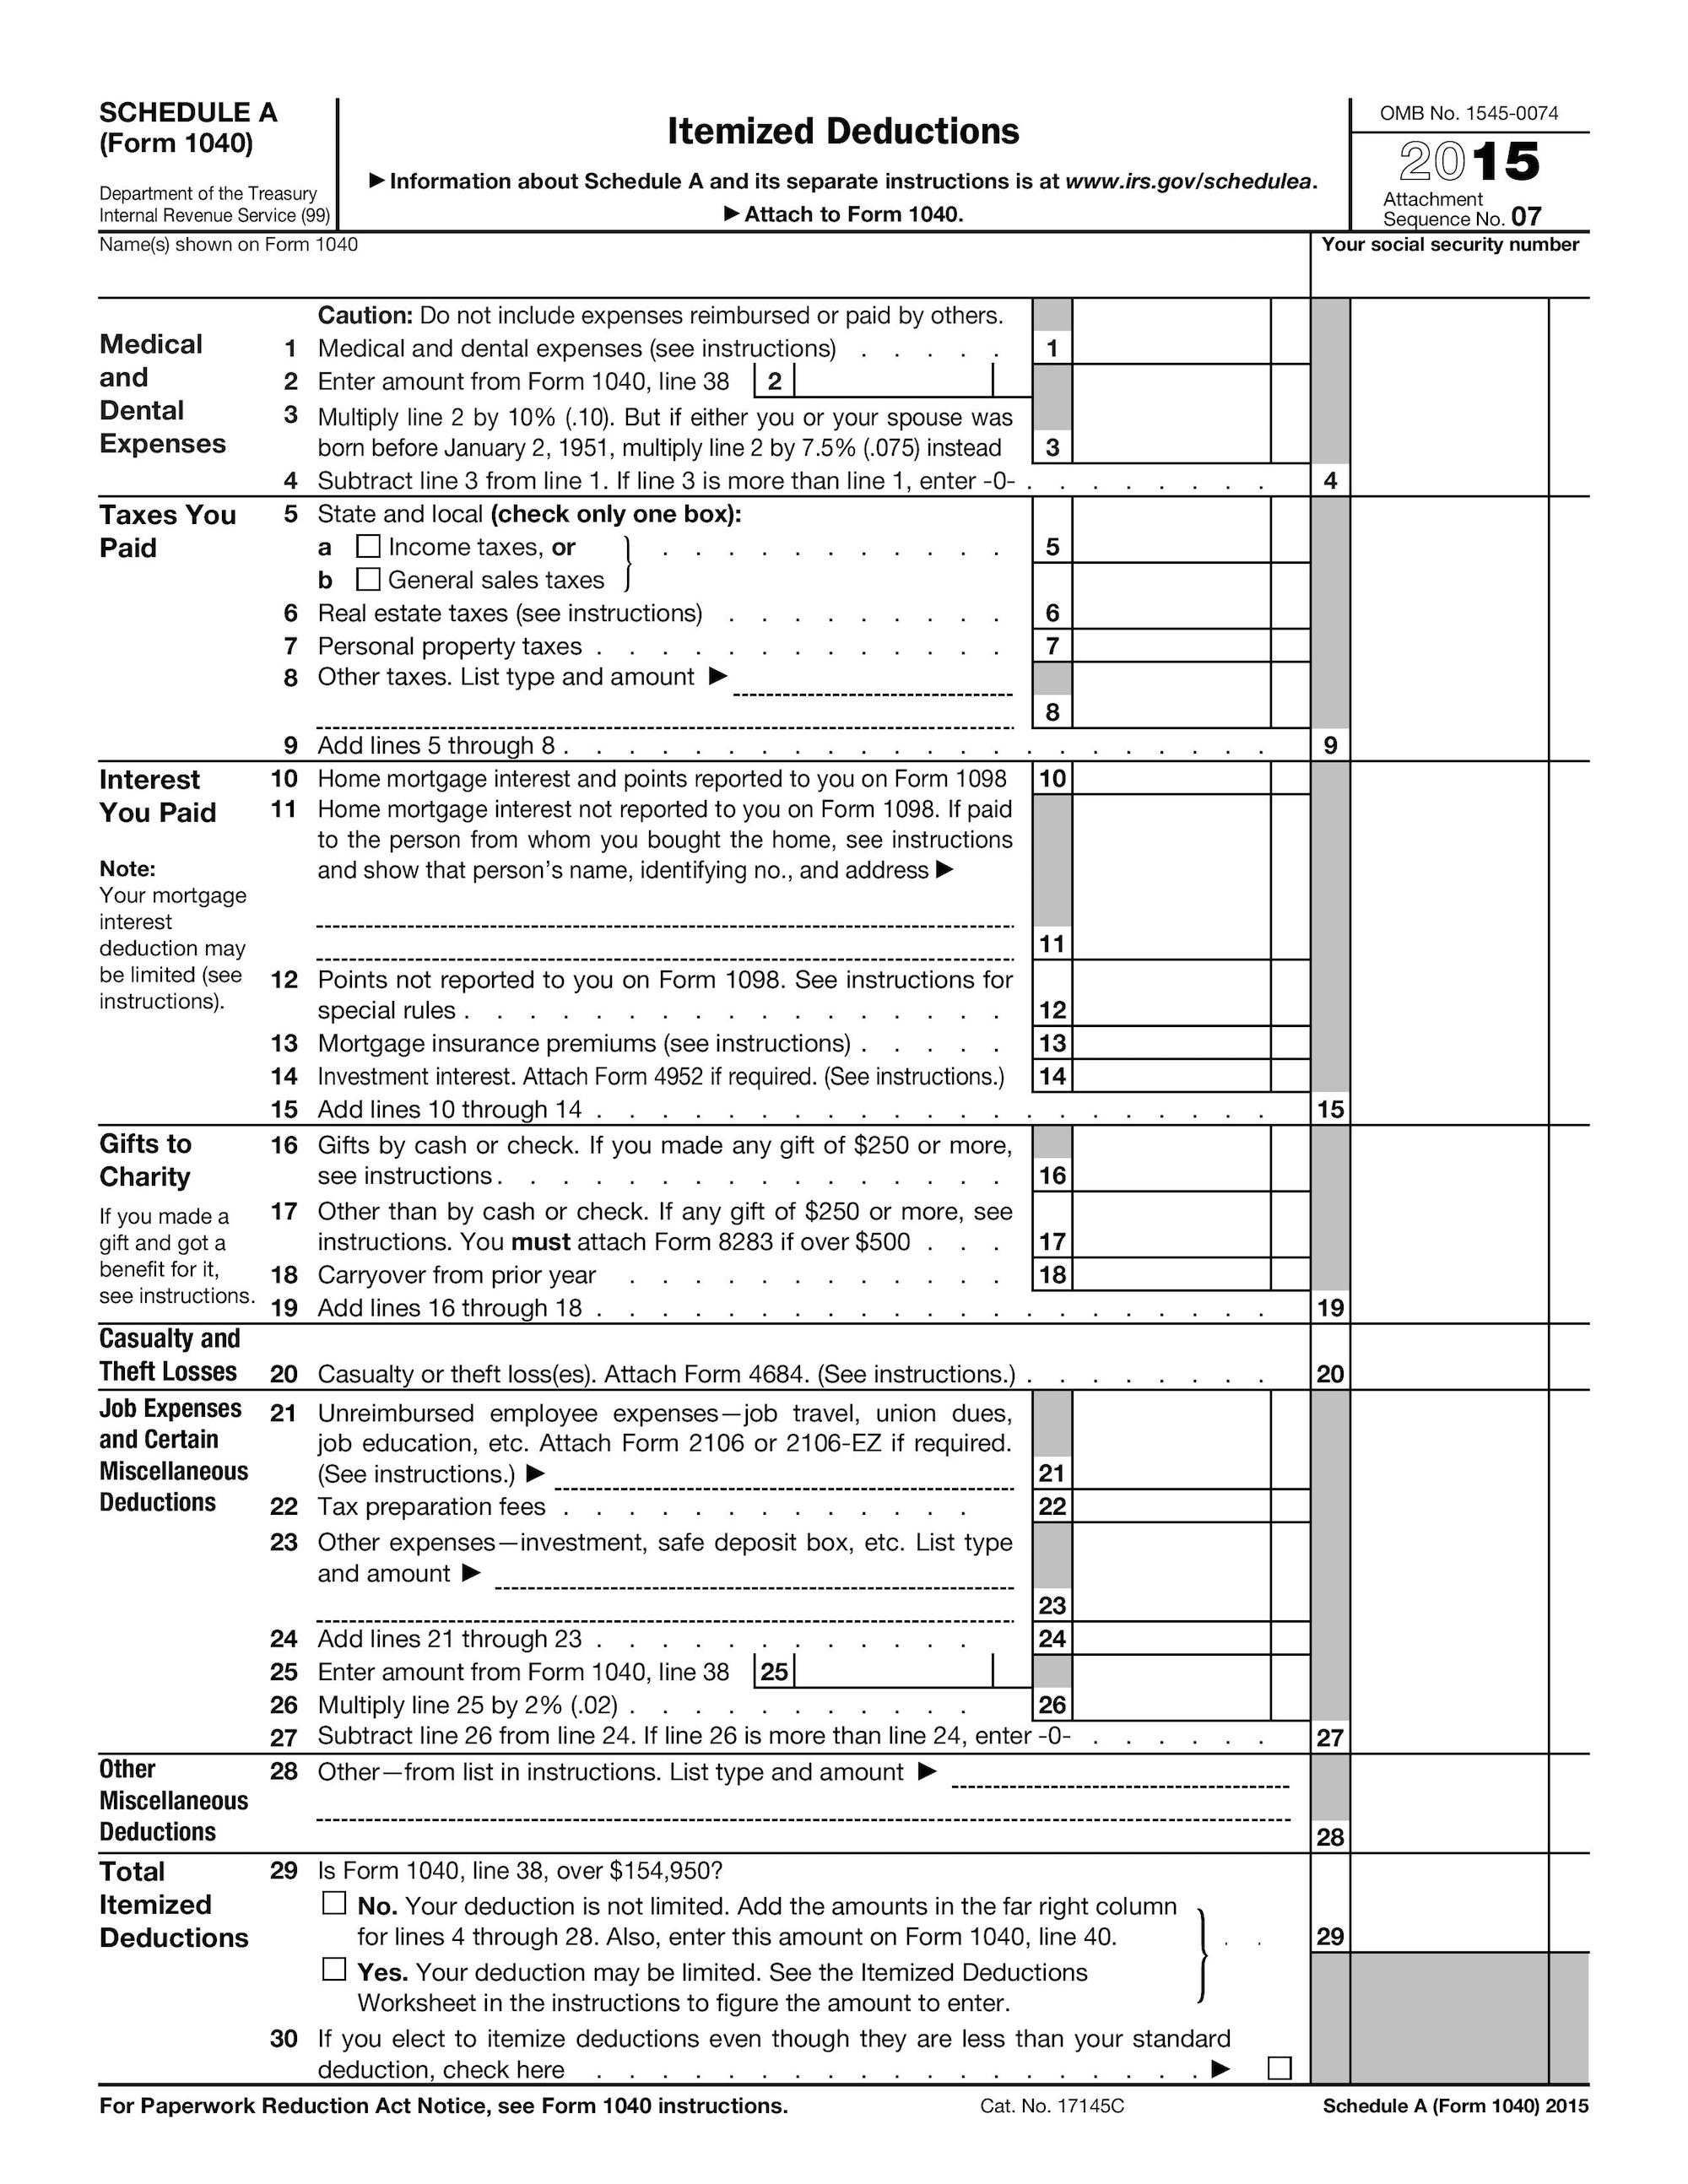 List Of Itemized Deductions Worksheet